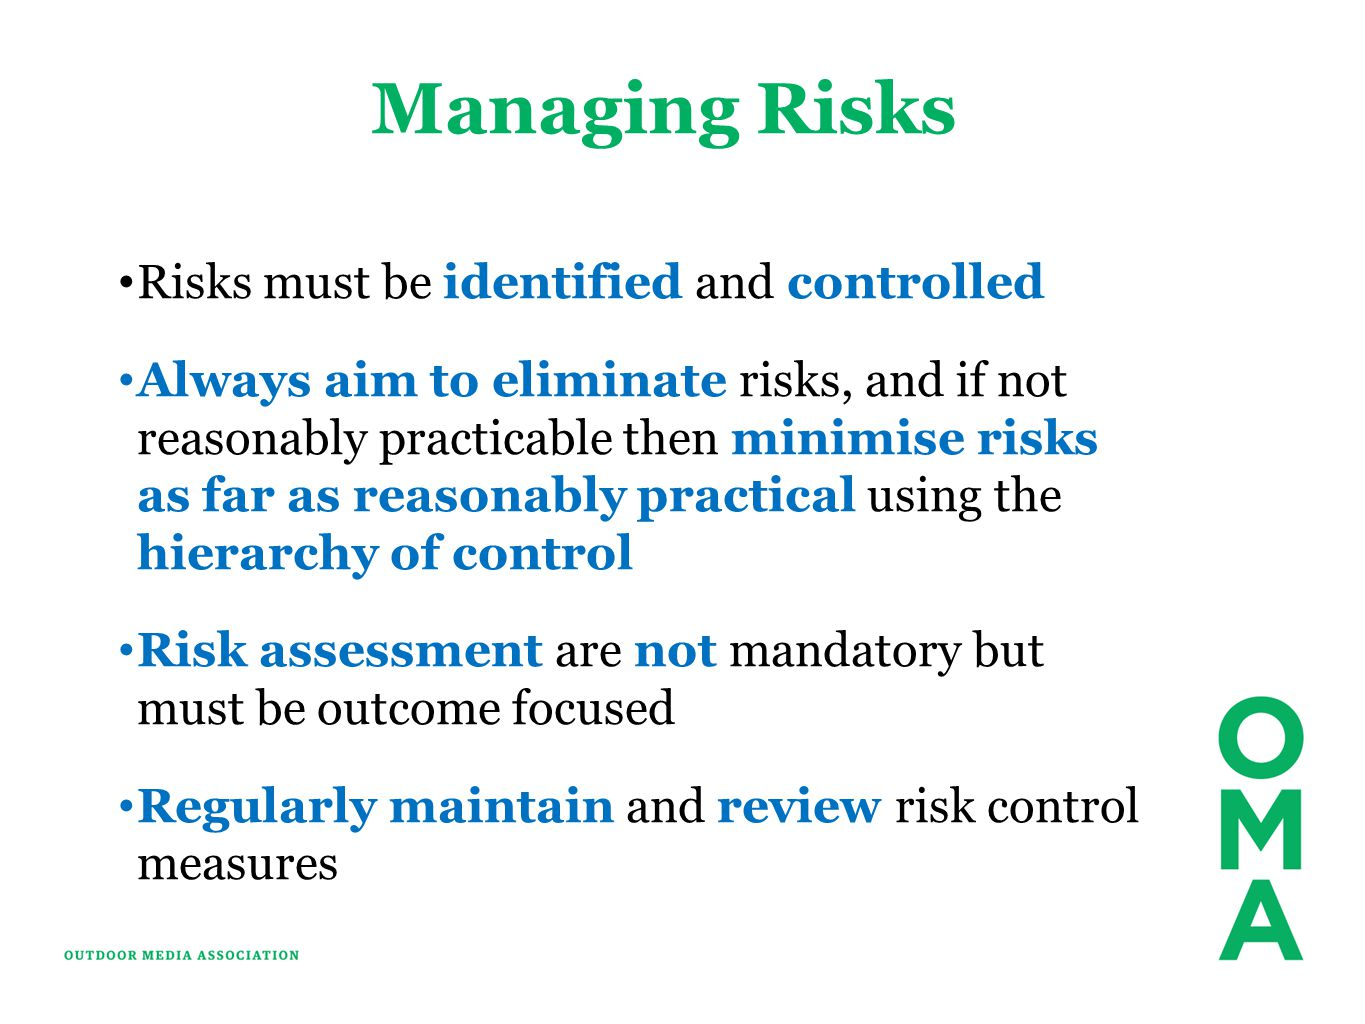 Managing Risks Risks must be identified and controlled Always aim to eliminate risks, and if not reasonably practicable then minimise risks as far as reasonably practical using the hierarchy of control Risk assessment are not mandatory but must be outcome focused Regularly maintain and review risk control measures